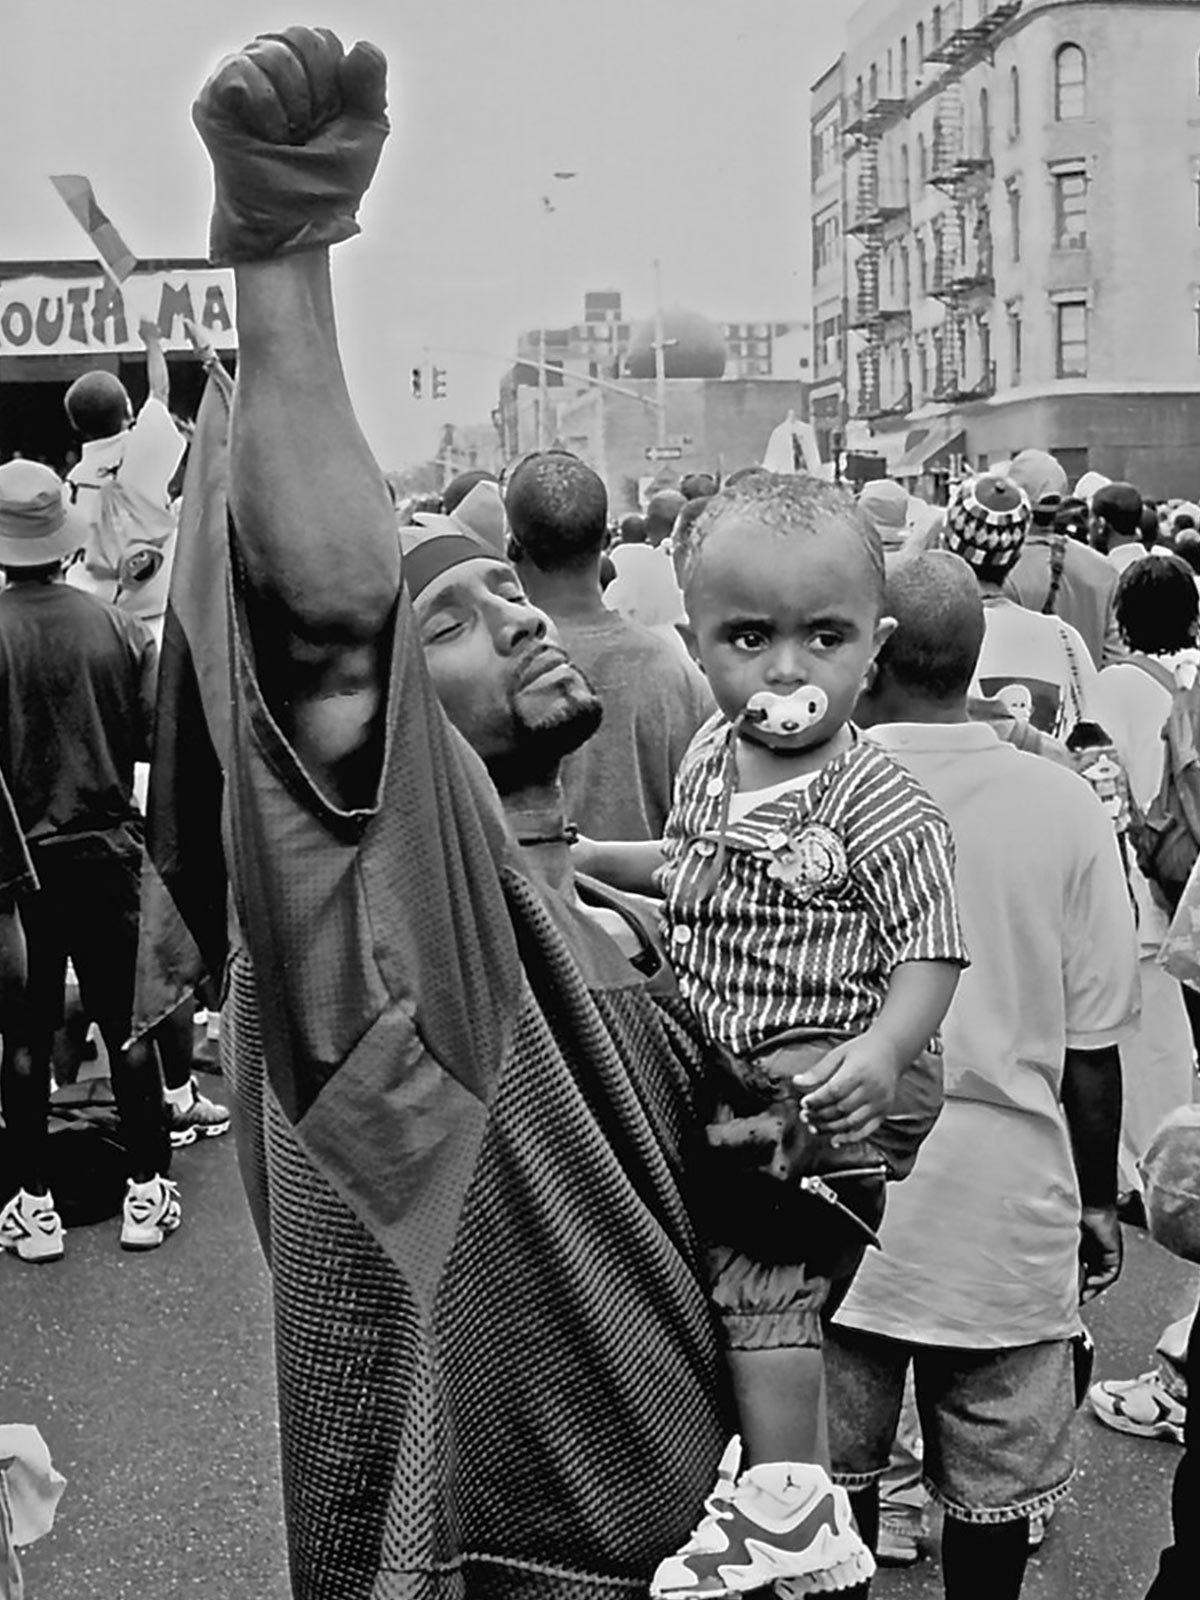 At 80-years-old, Harlem photographer Shawn Walker finally gets his due